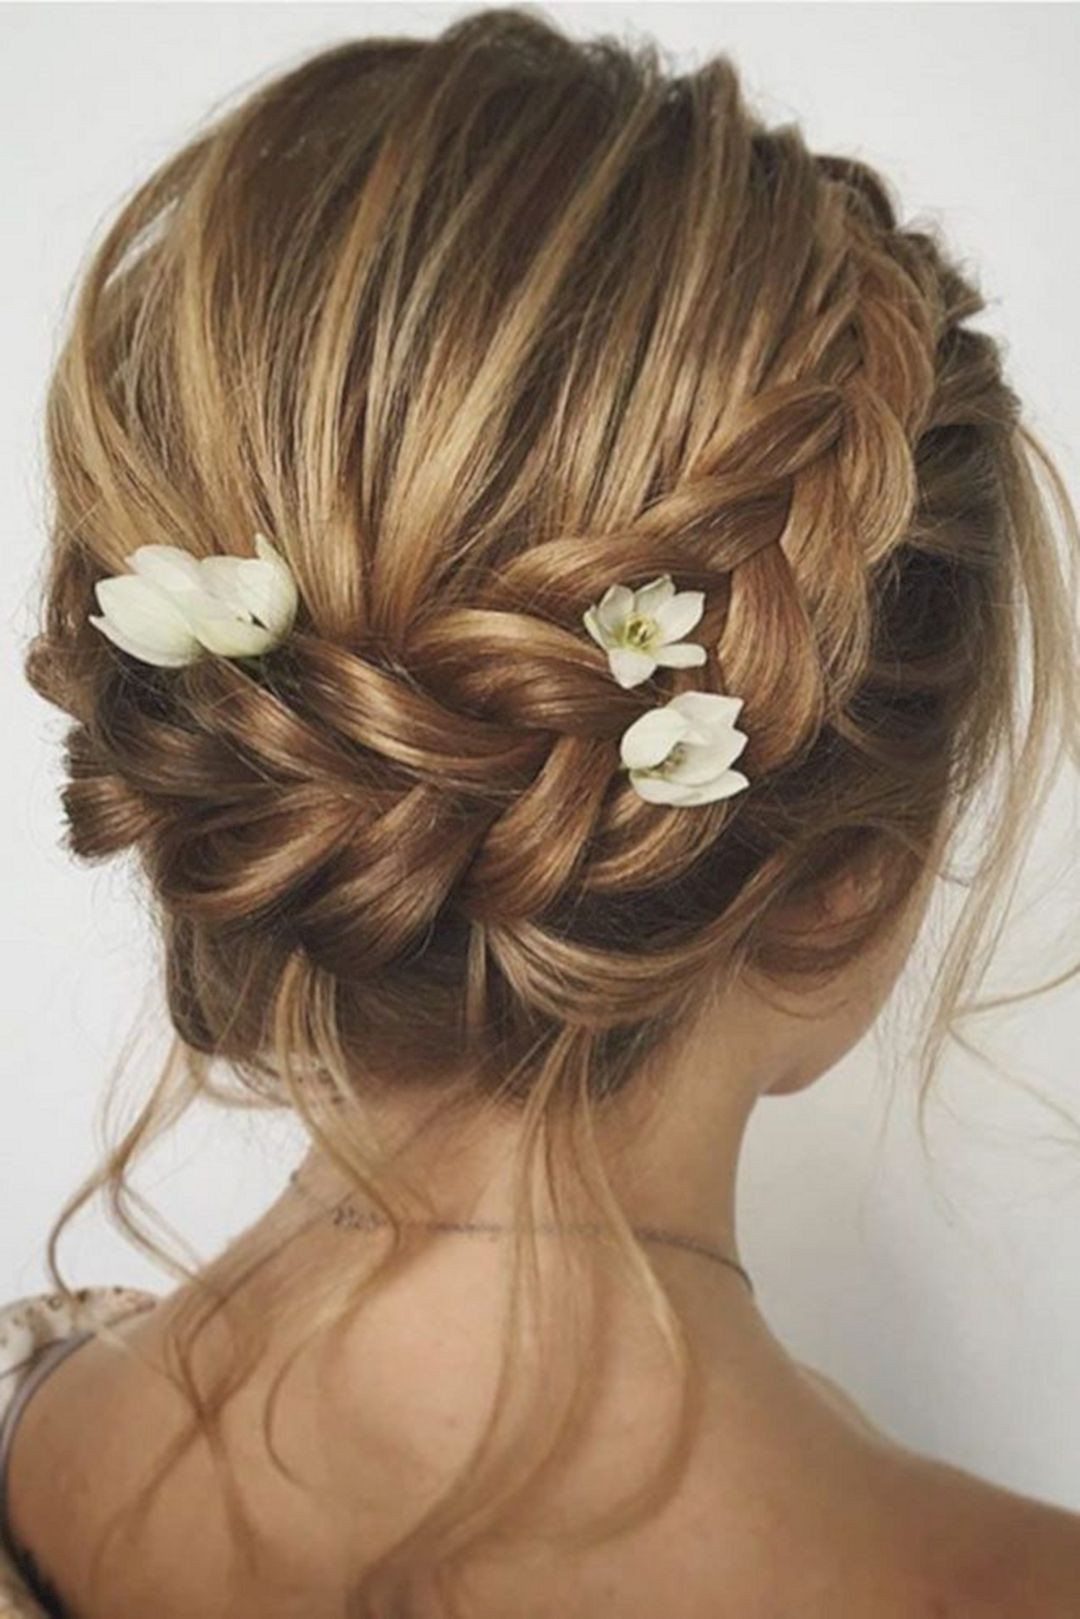 Bridesmaids Hairstyles  Wedding Bridesmaid Hairstyles for Short Hairs – OOSILE